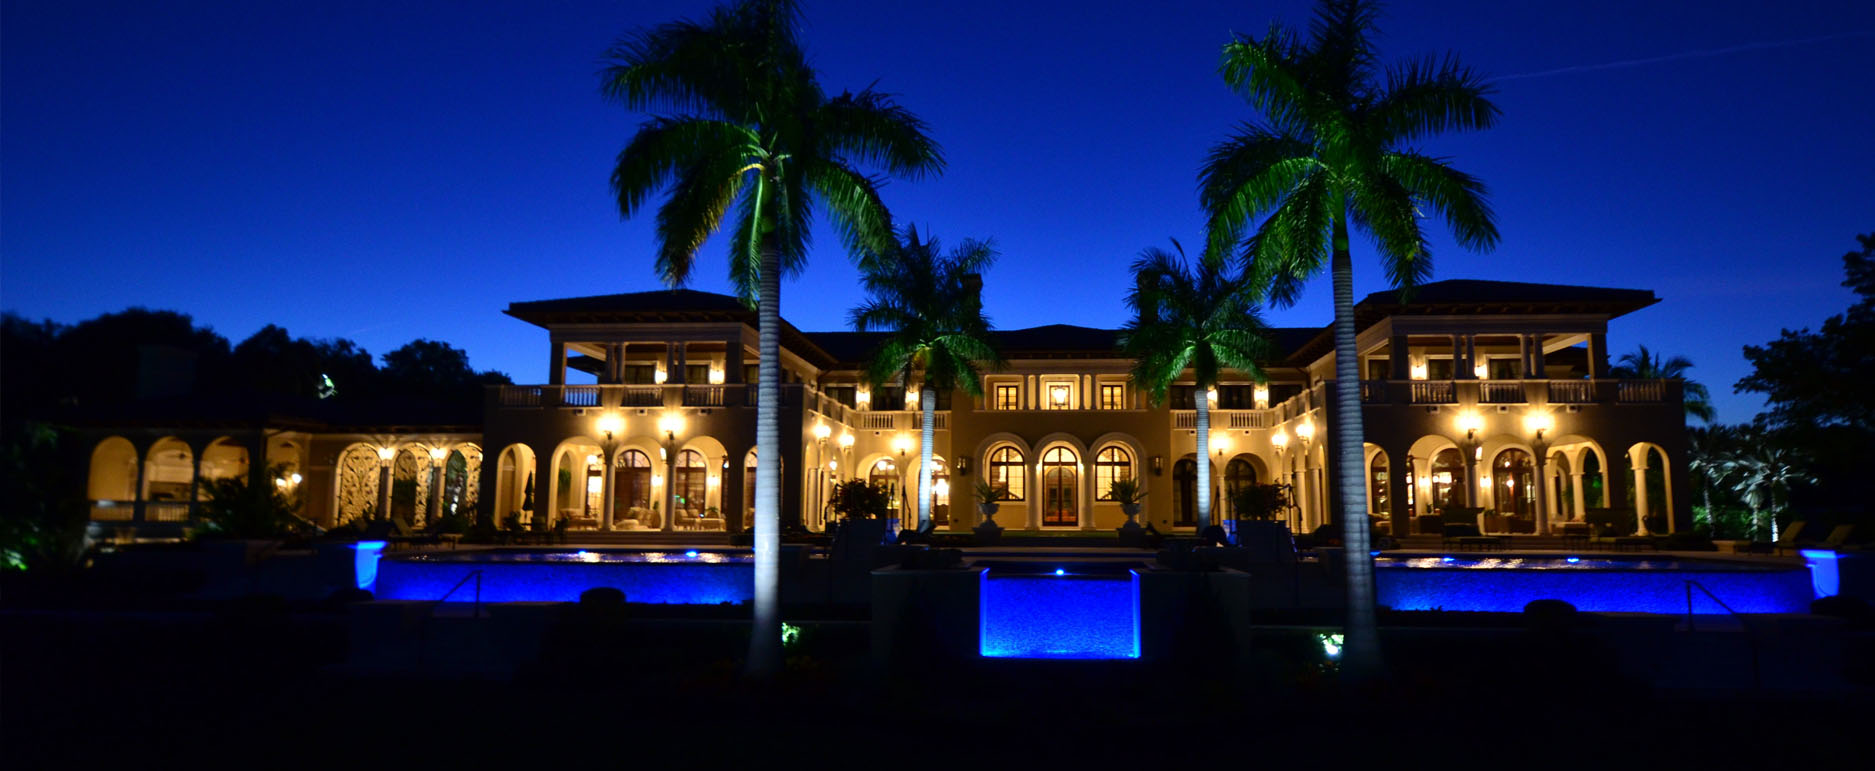 , Gables Estates Mediterranean